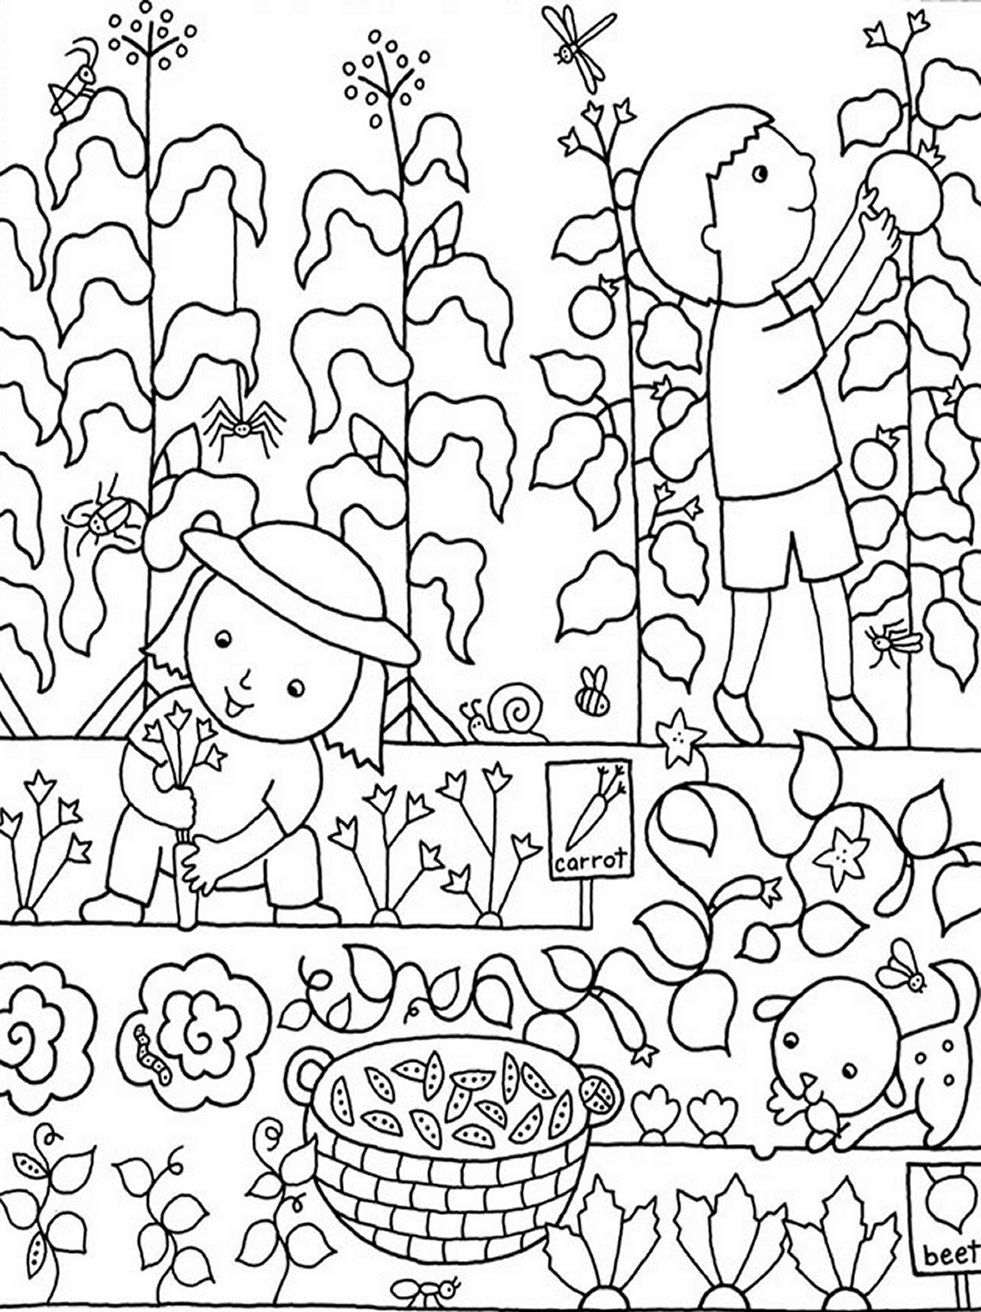 garden coloring sheet kids gardening coloring pages free colouring pictures to sheet garden coloring